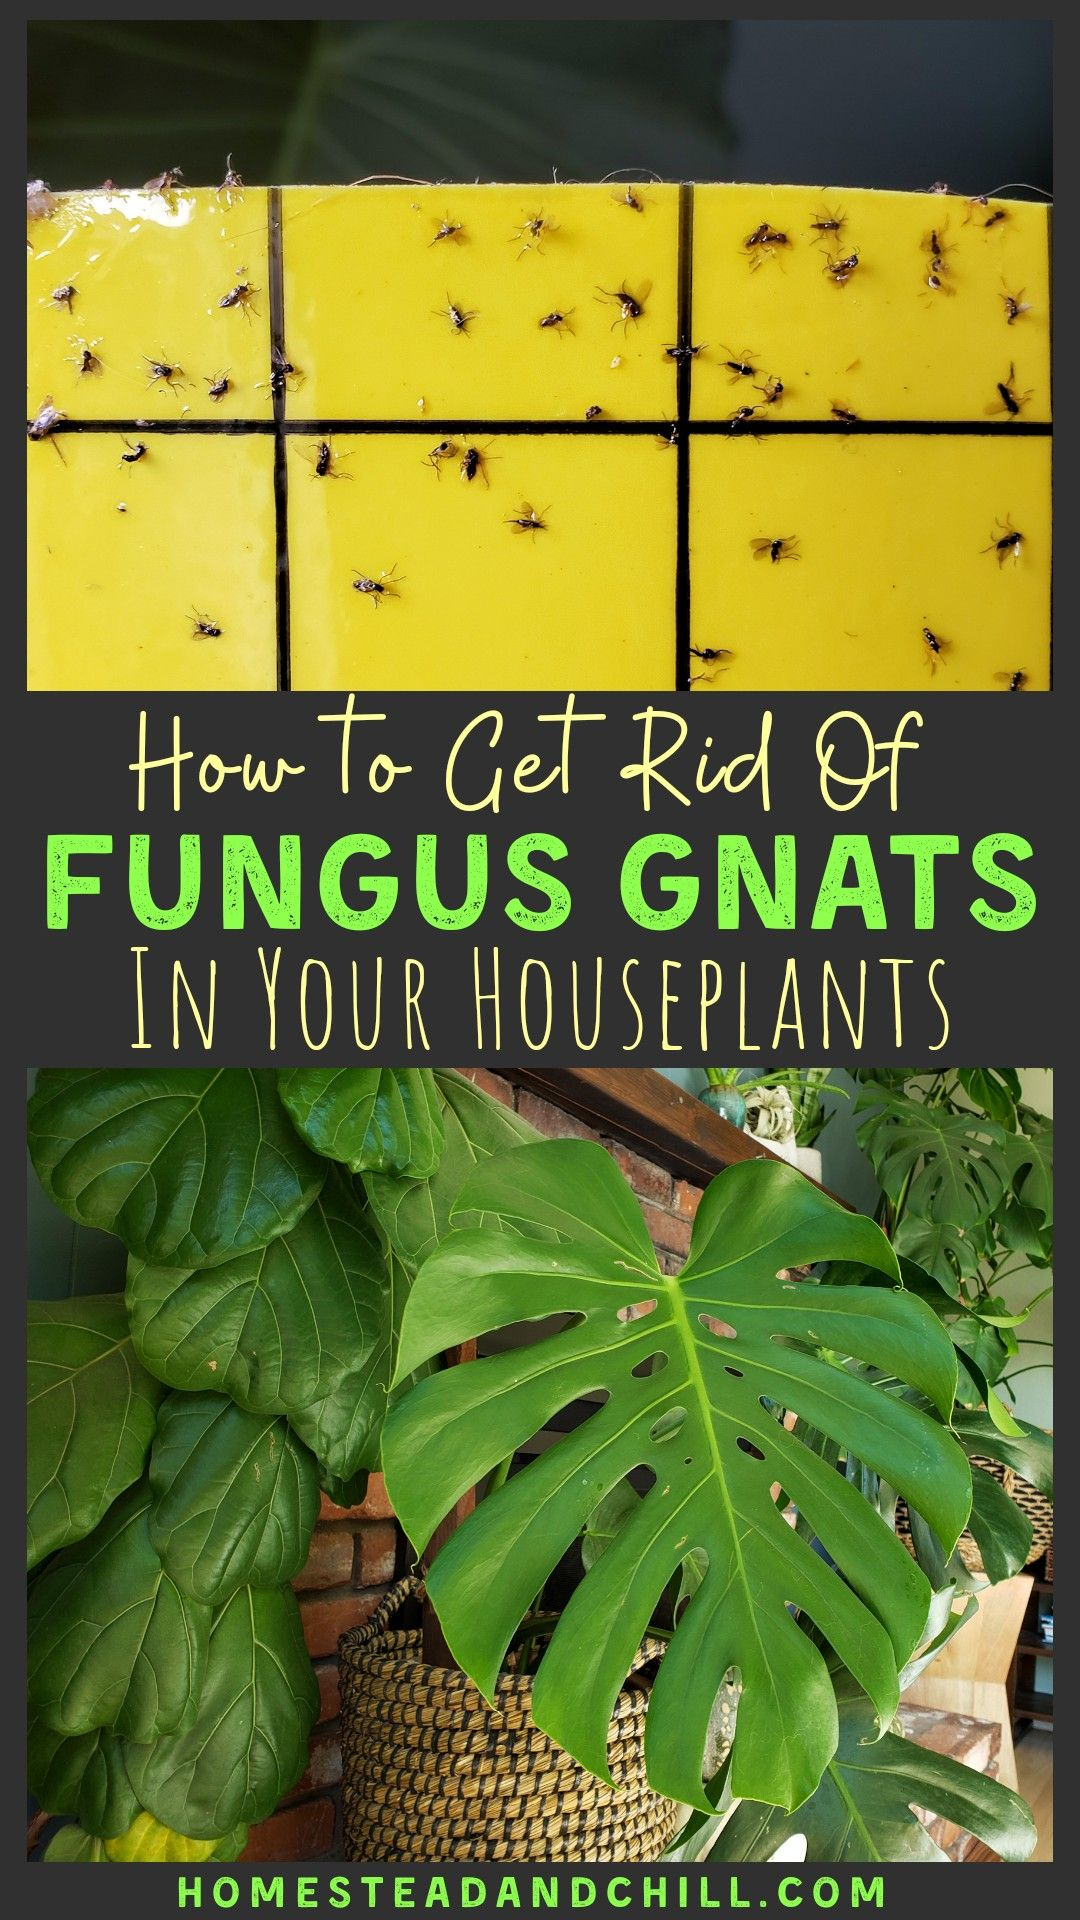 How To Get Rid Of Fungus Gnats In Houseplants, Organically